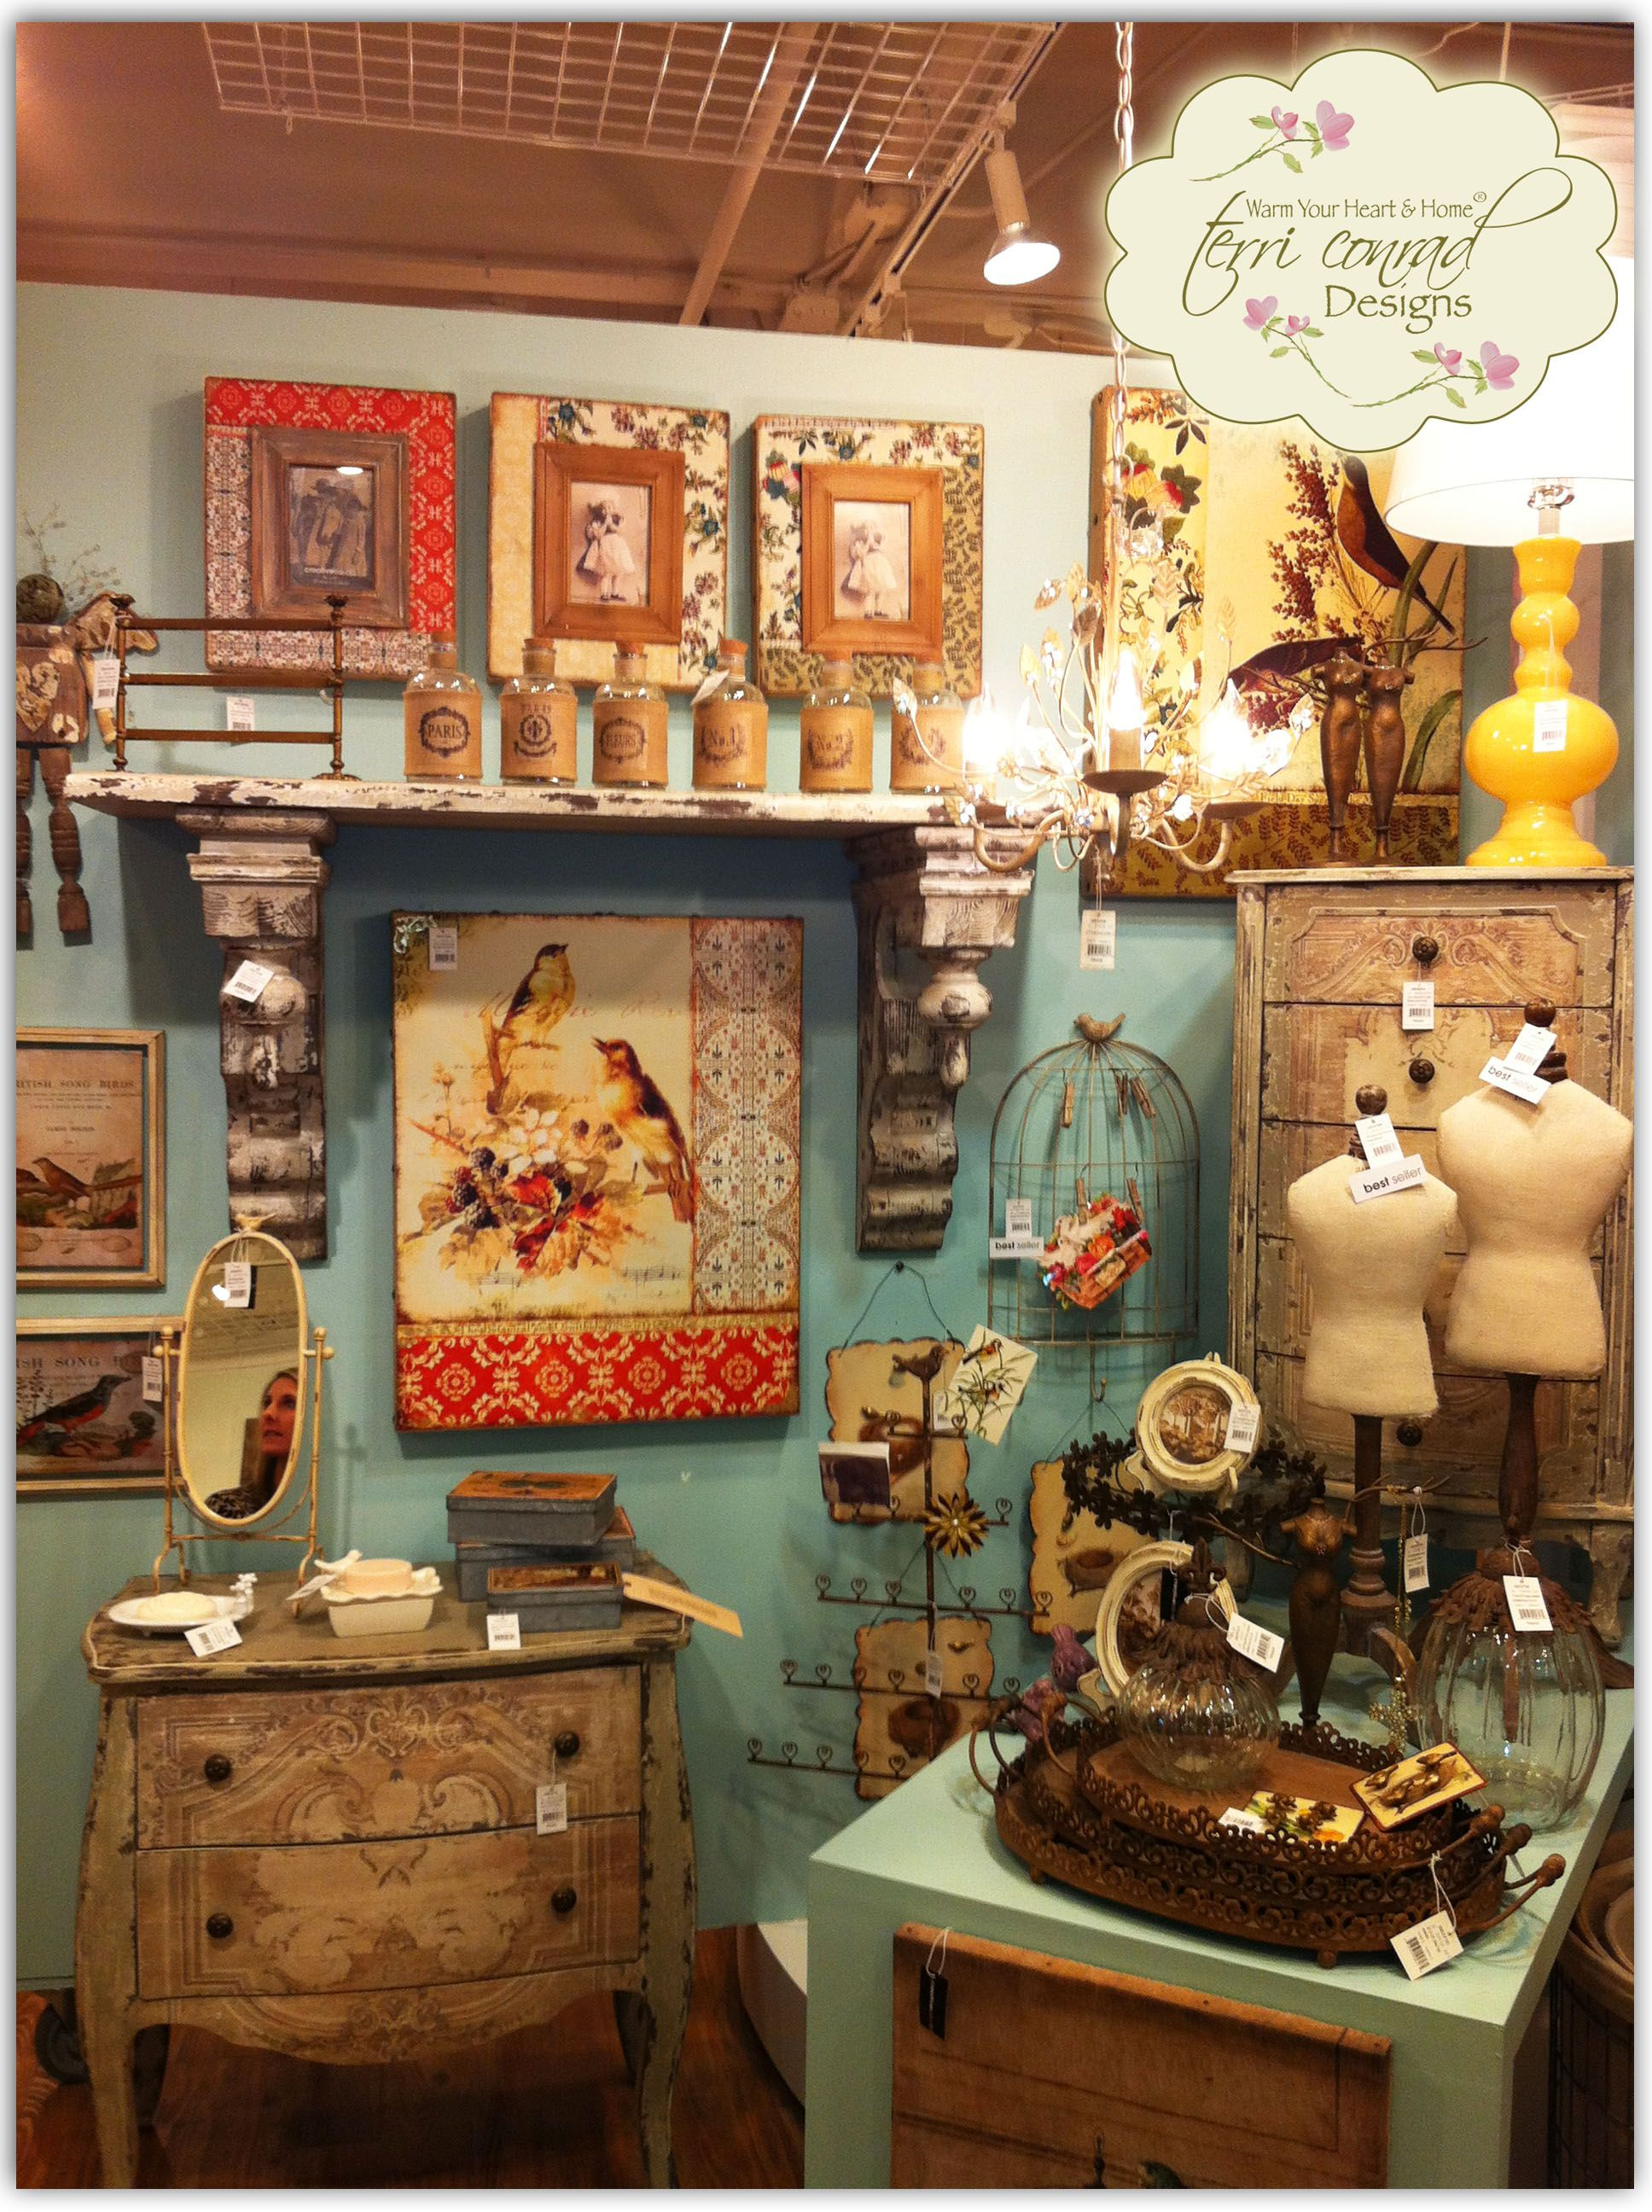 Terri Conrad Designs for Creative Co-Op #vintage inspired ...